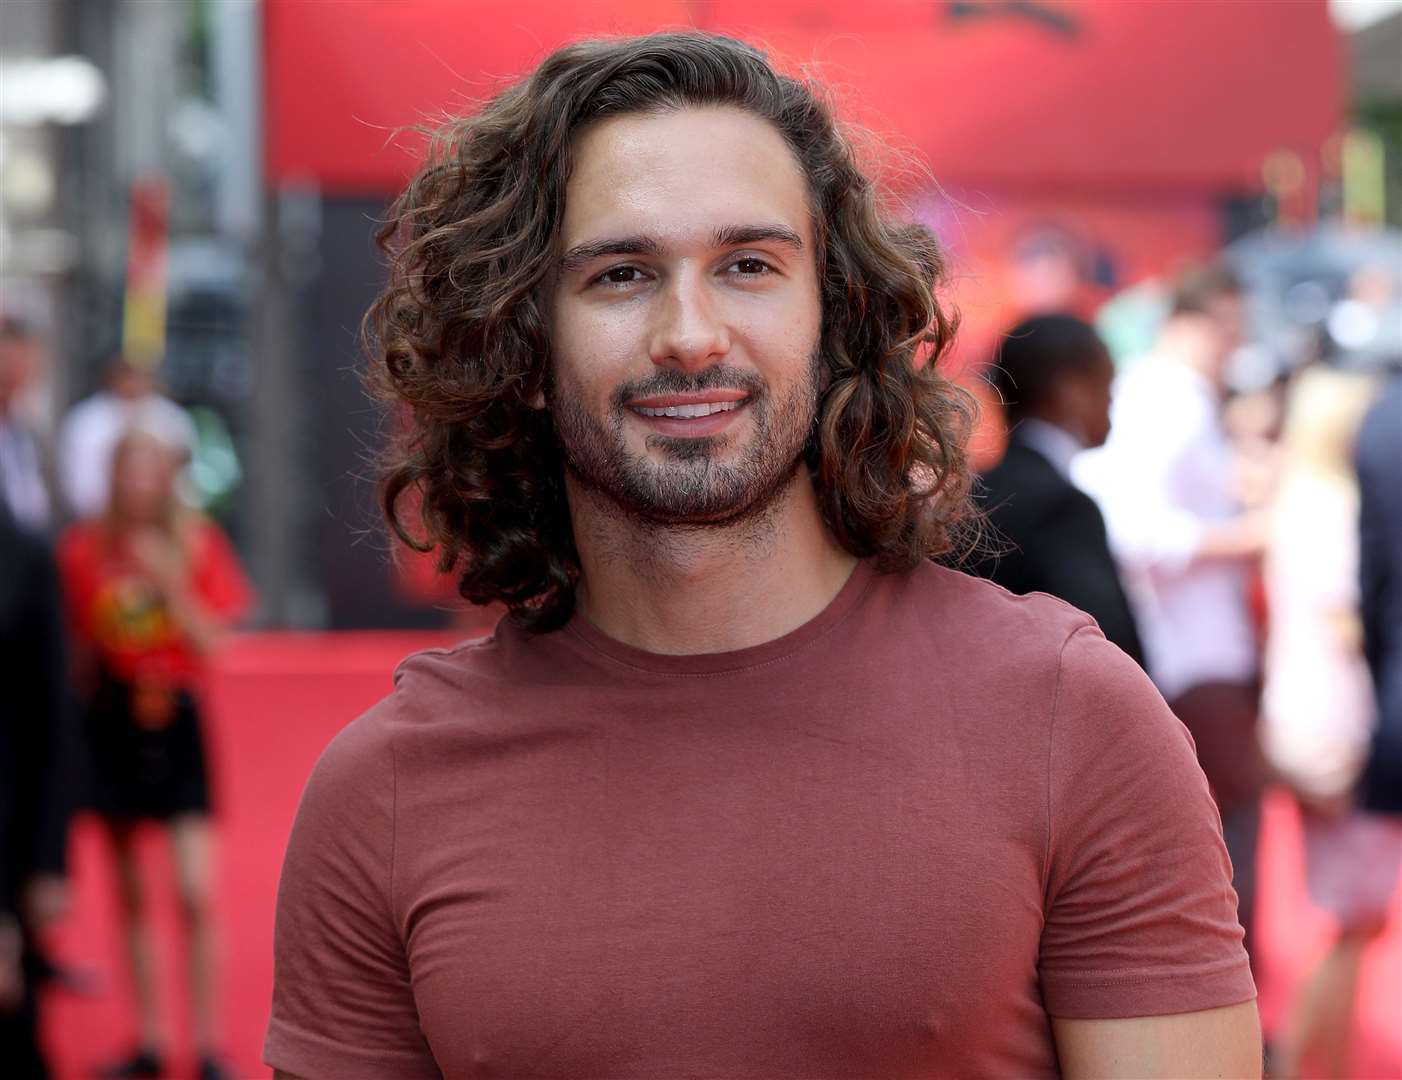 FITNESS EXPERT: Joe Wicks has provided new workouts.